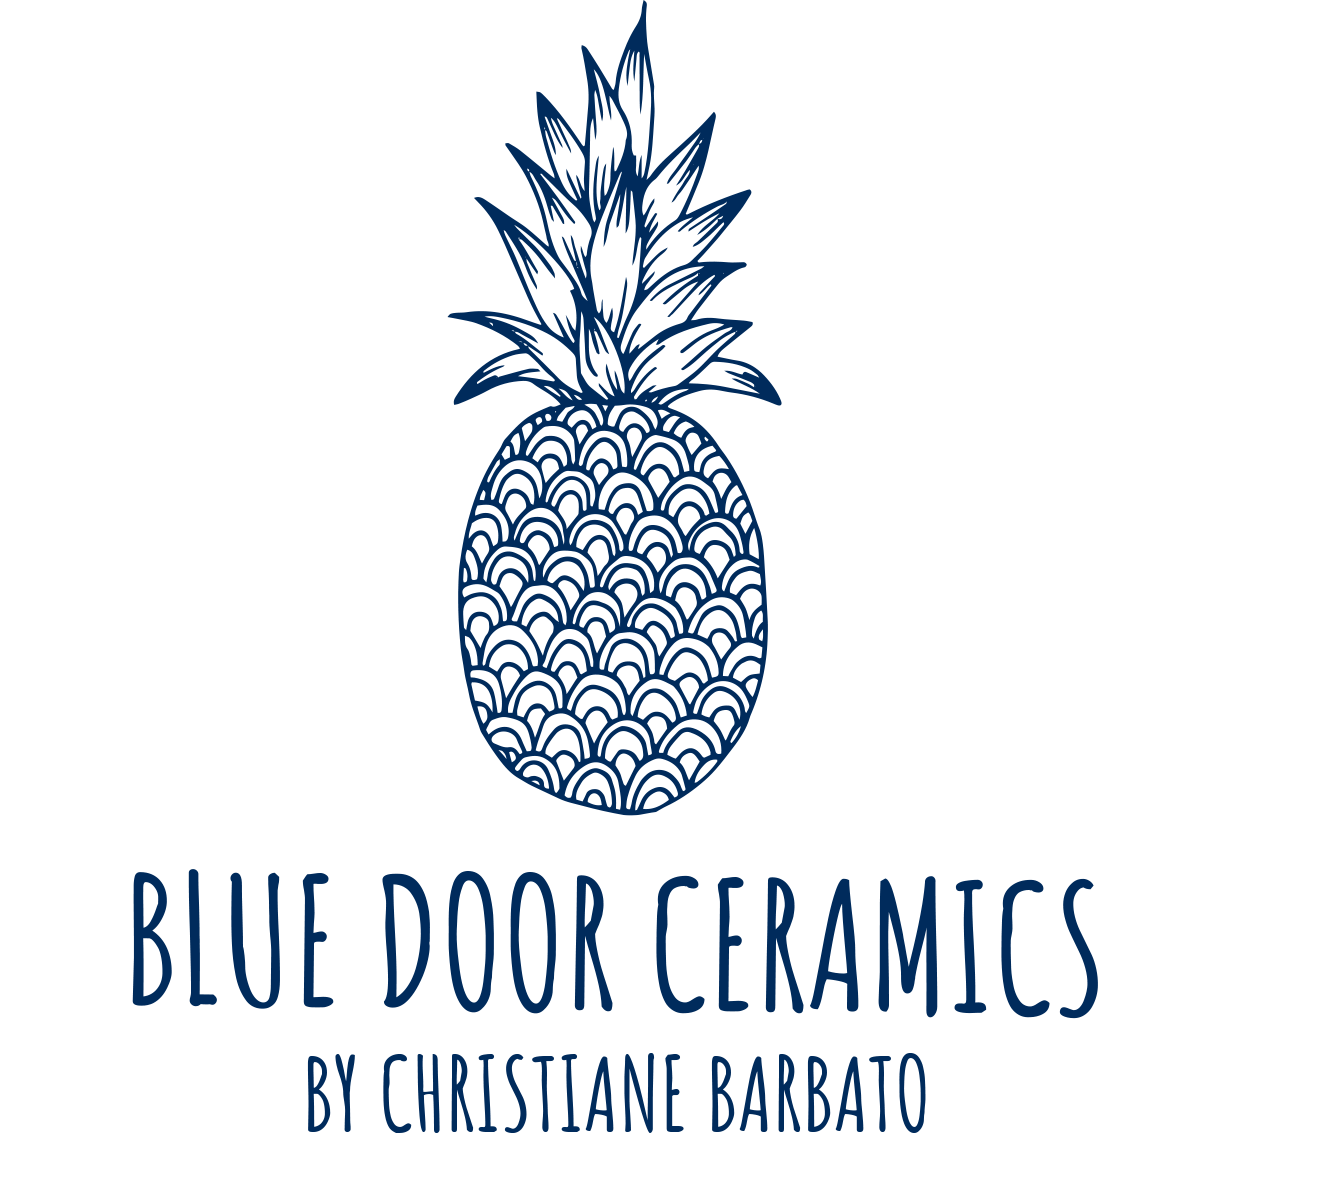 Blue Door Ceramics